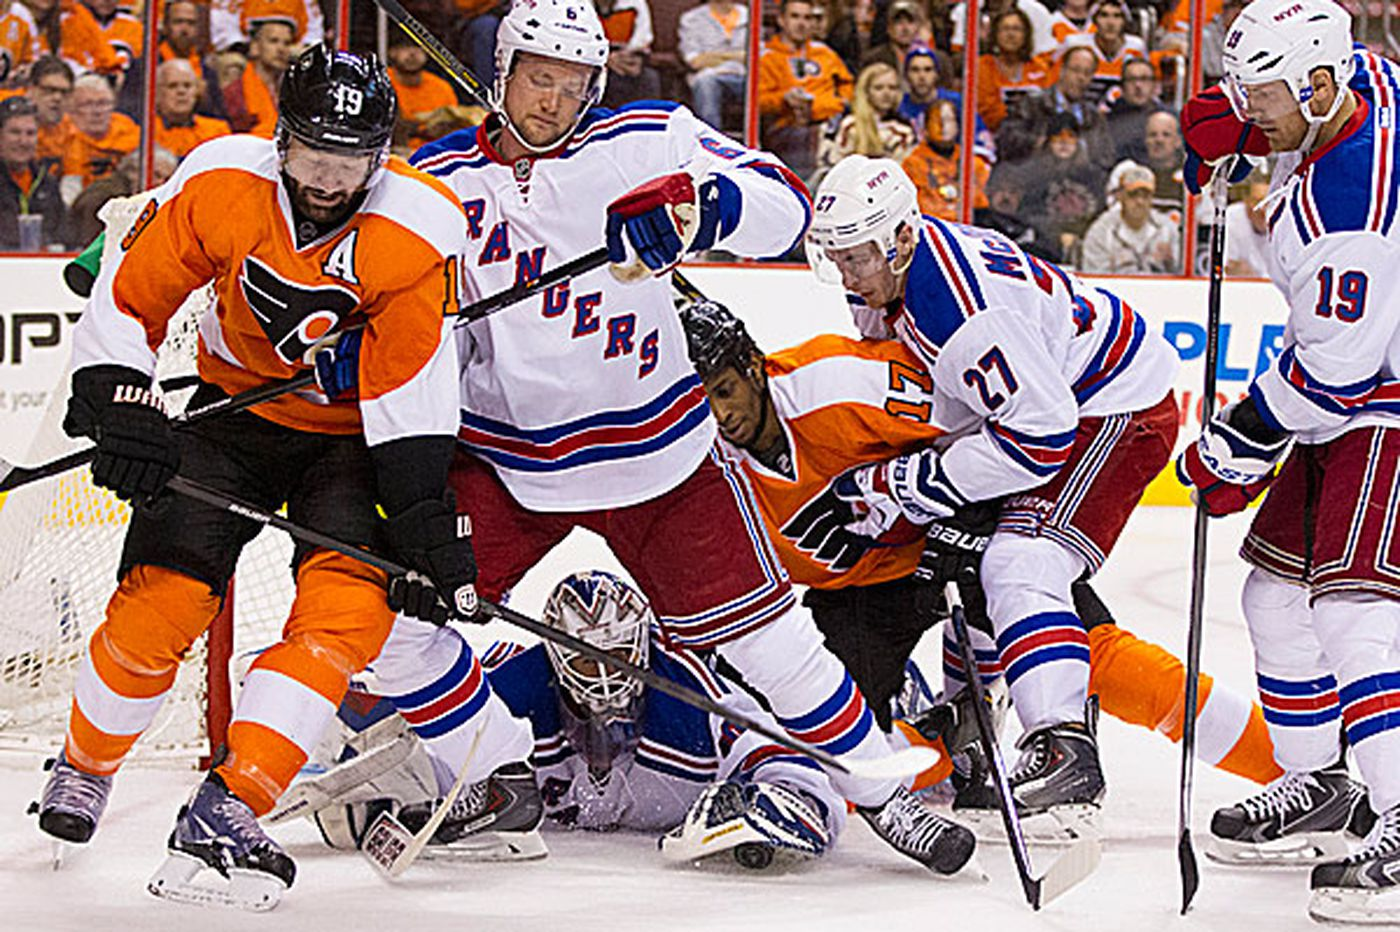 Can Flyers spoil Rangers' block party?